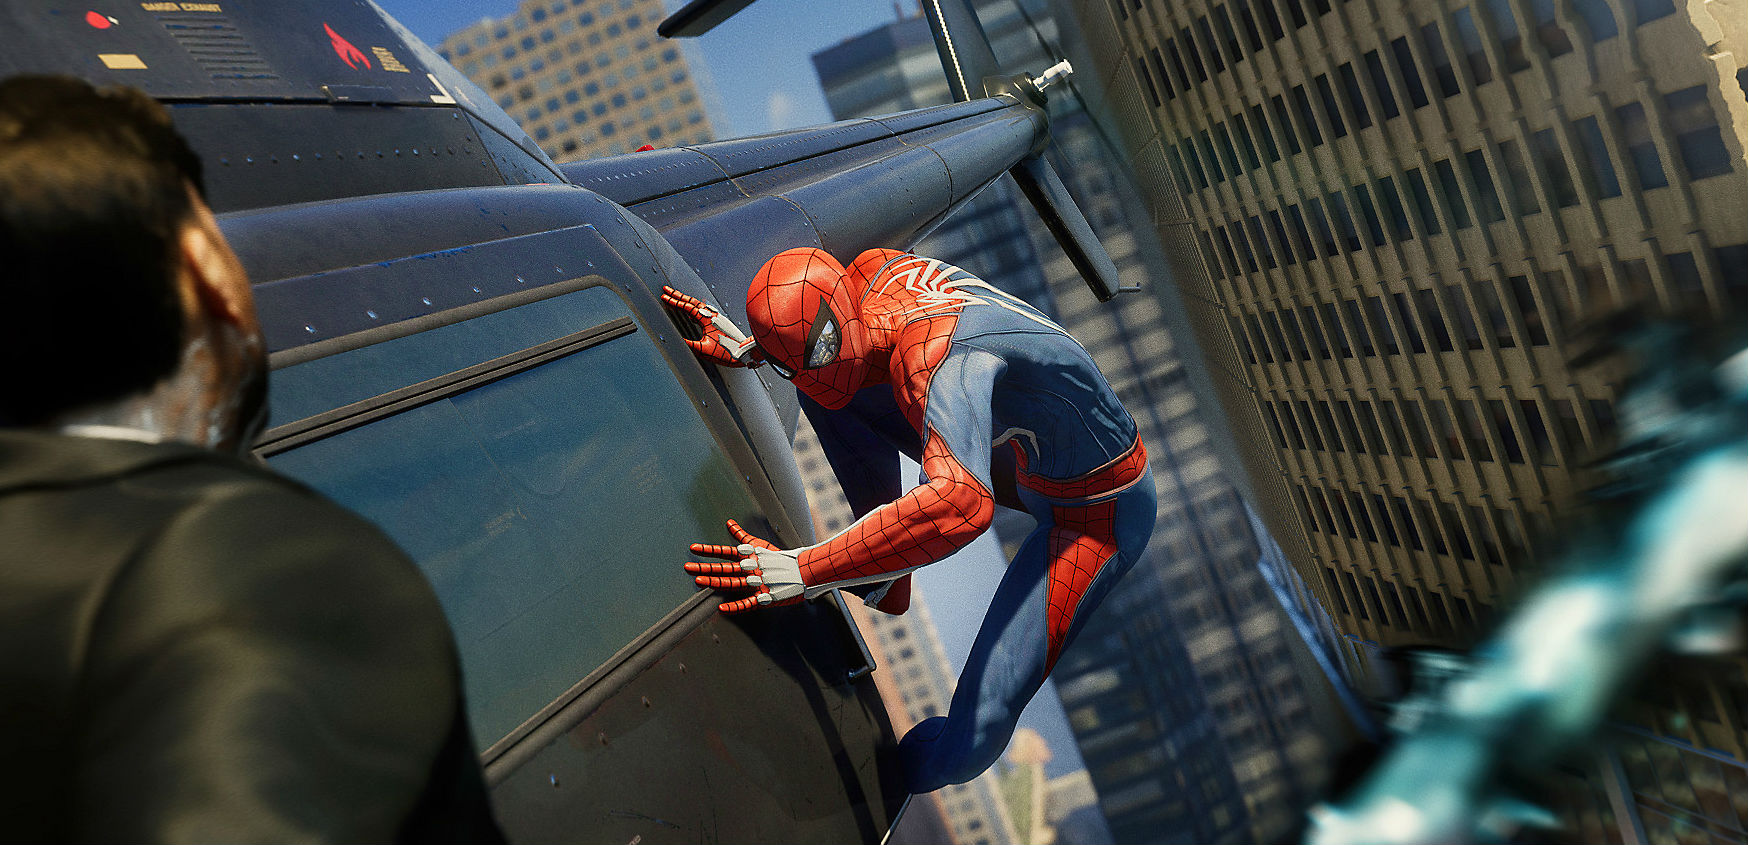 As an avid Arkham player, Spider-Man PS4 manages to differentiate itself quite a bit